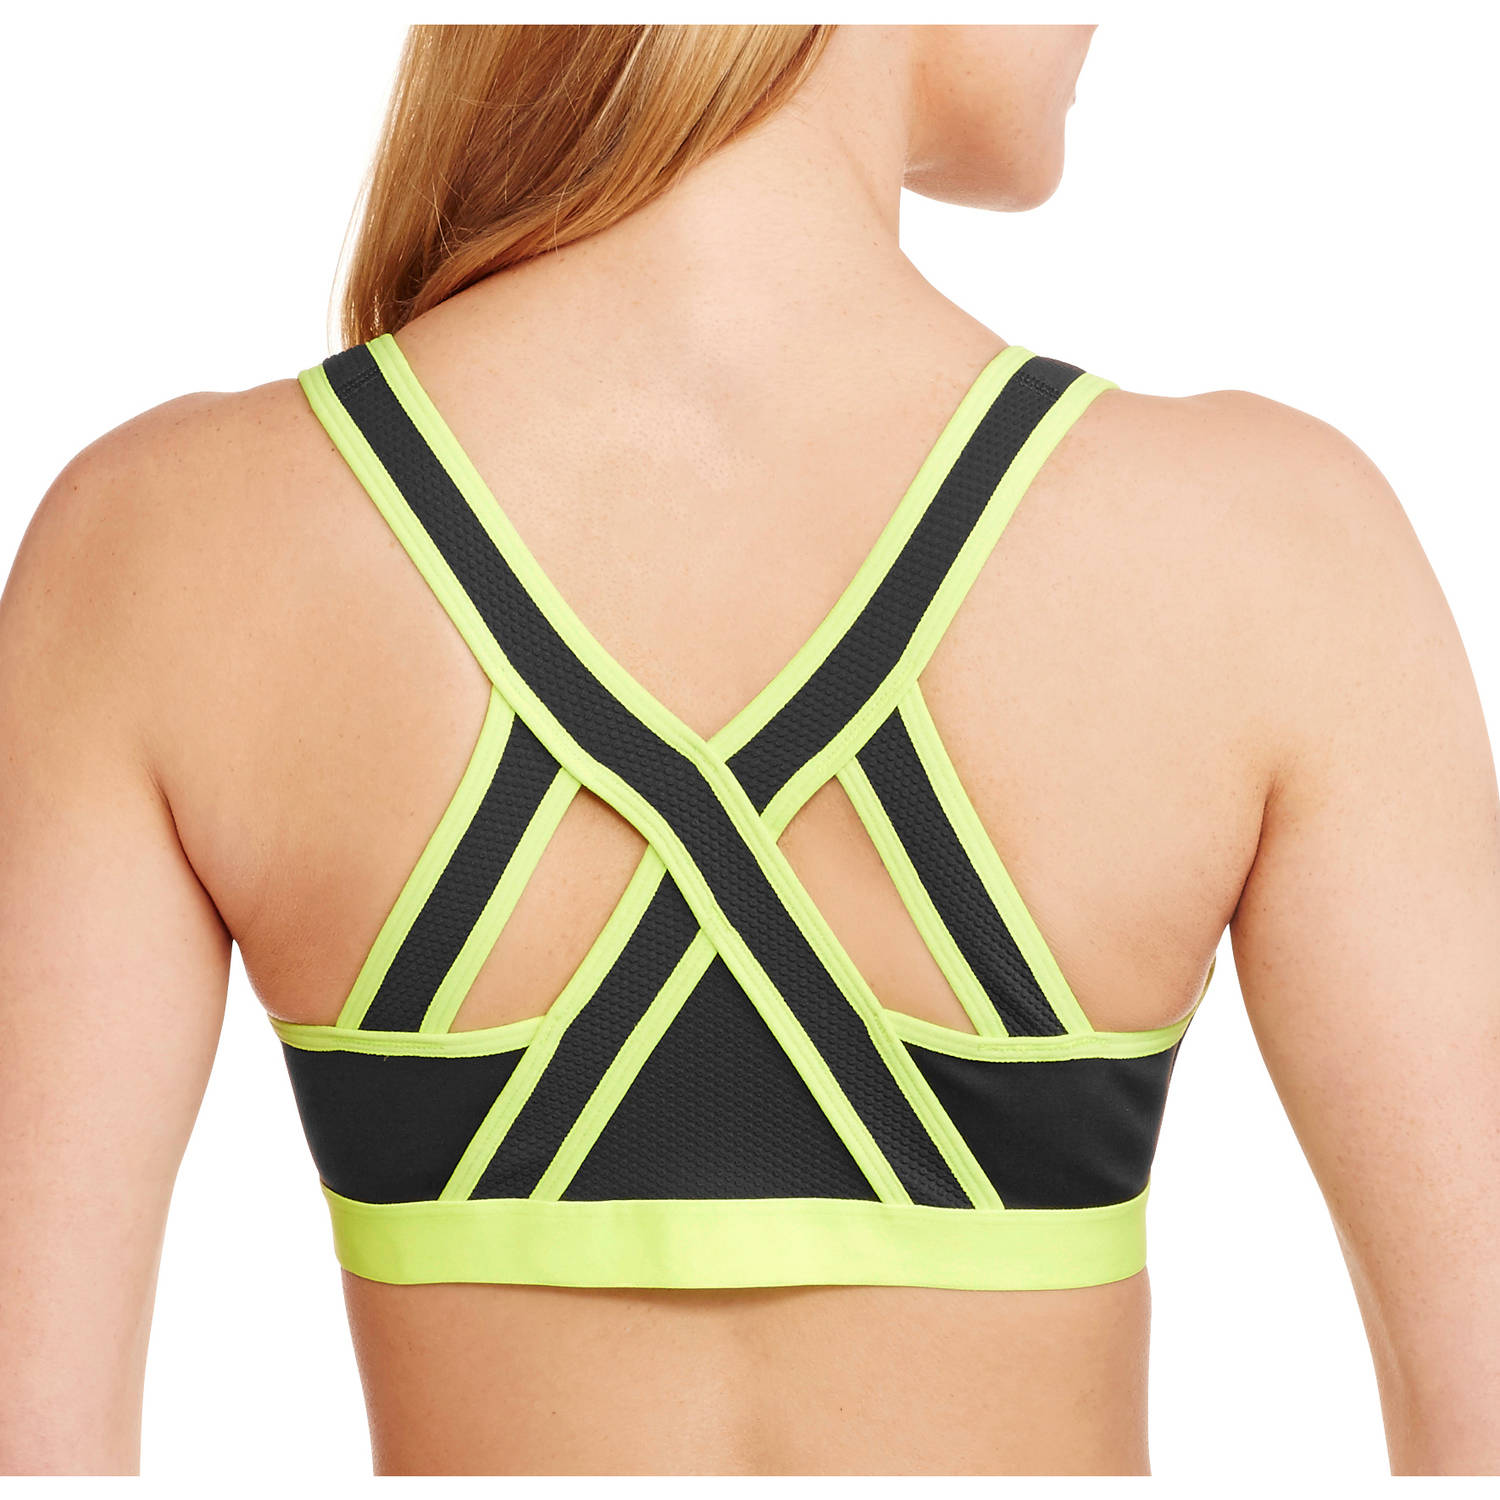 f11aed4434910 Danskin Now - Criss Cross Back Straps Front Close Sports Bra